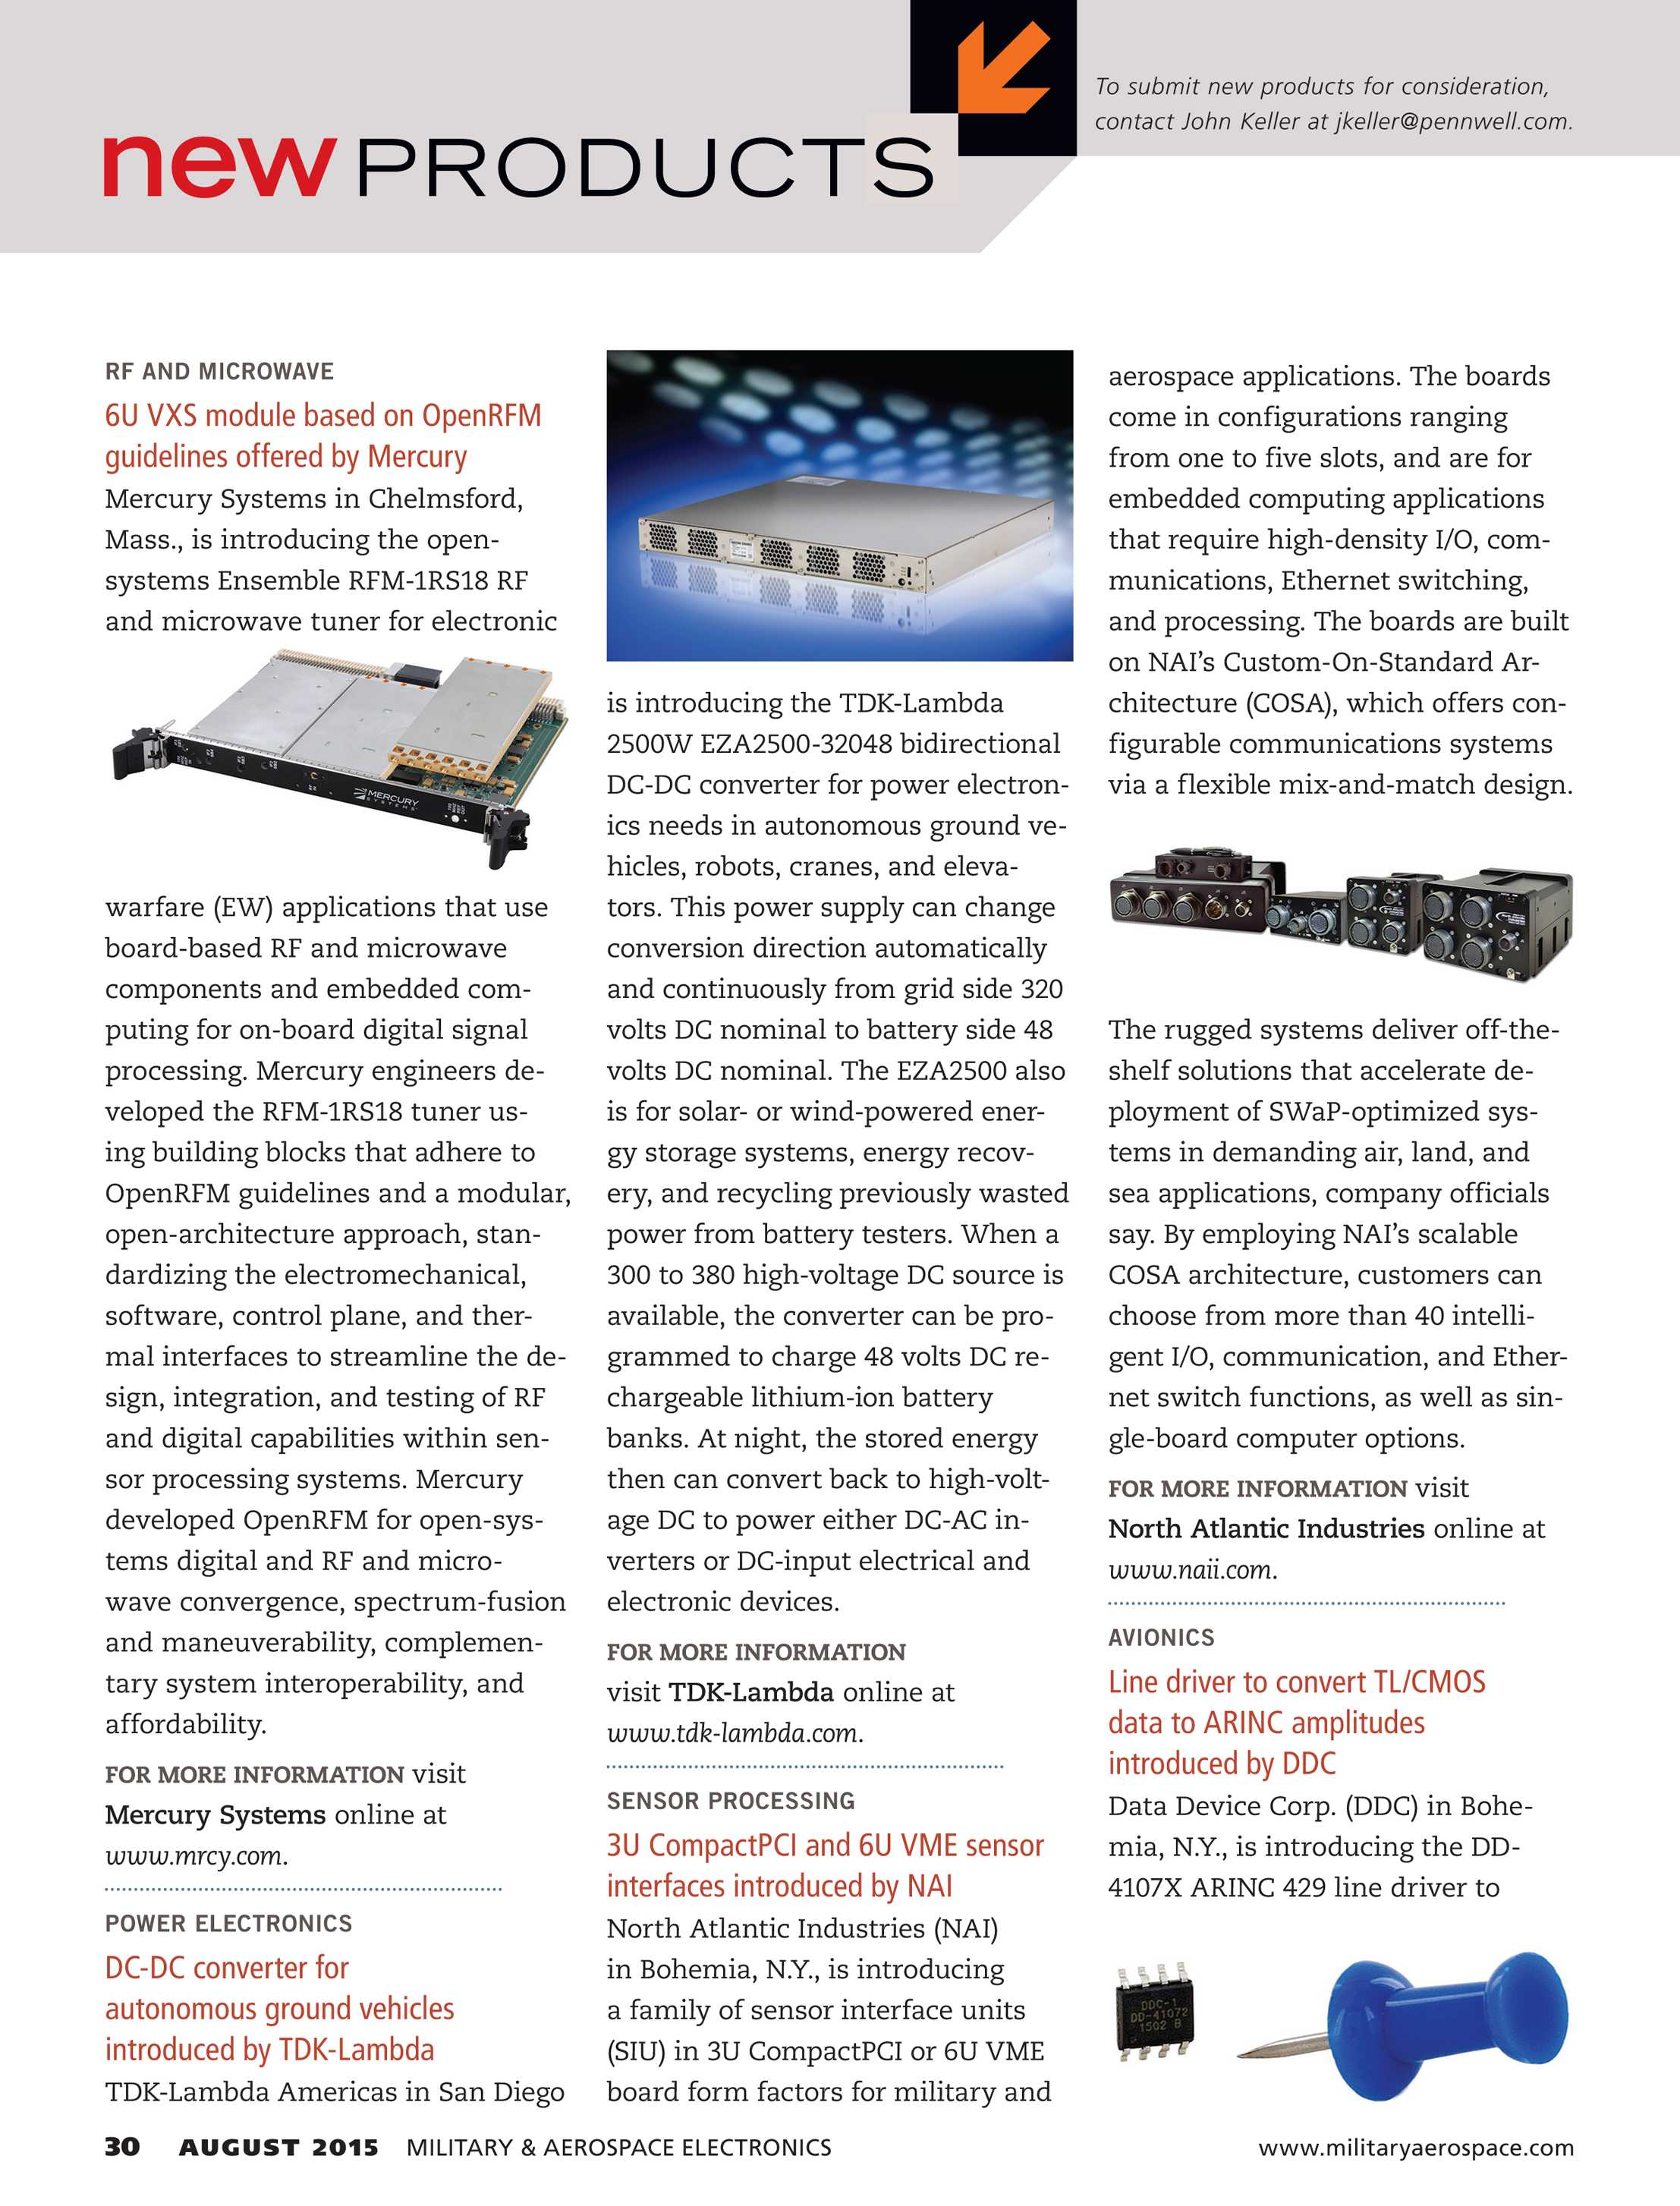 Military & Aerospace Electronics - August 2015 - page 30